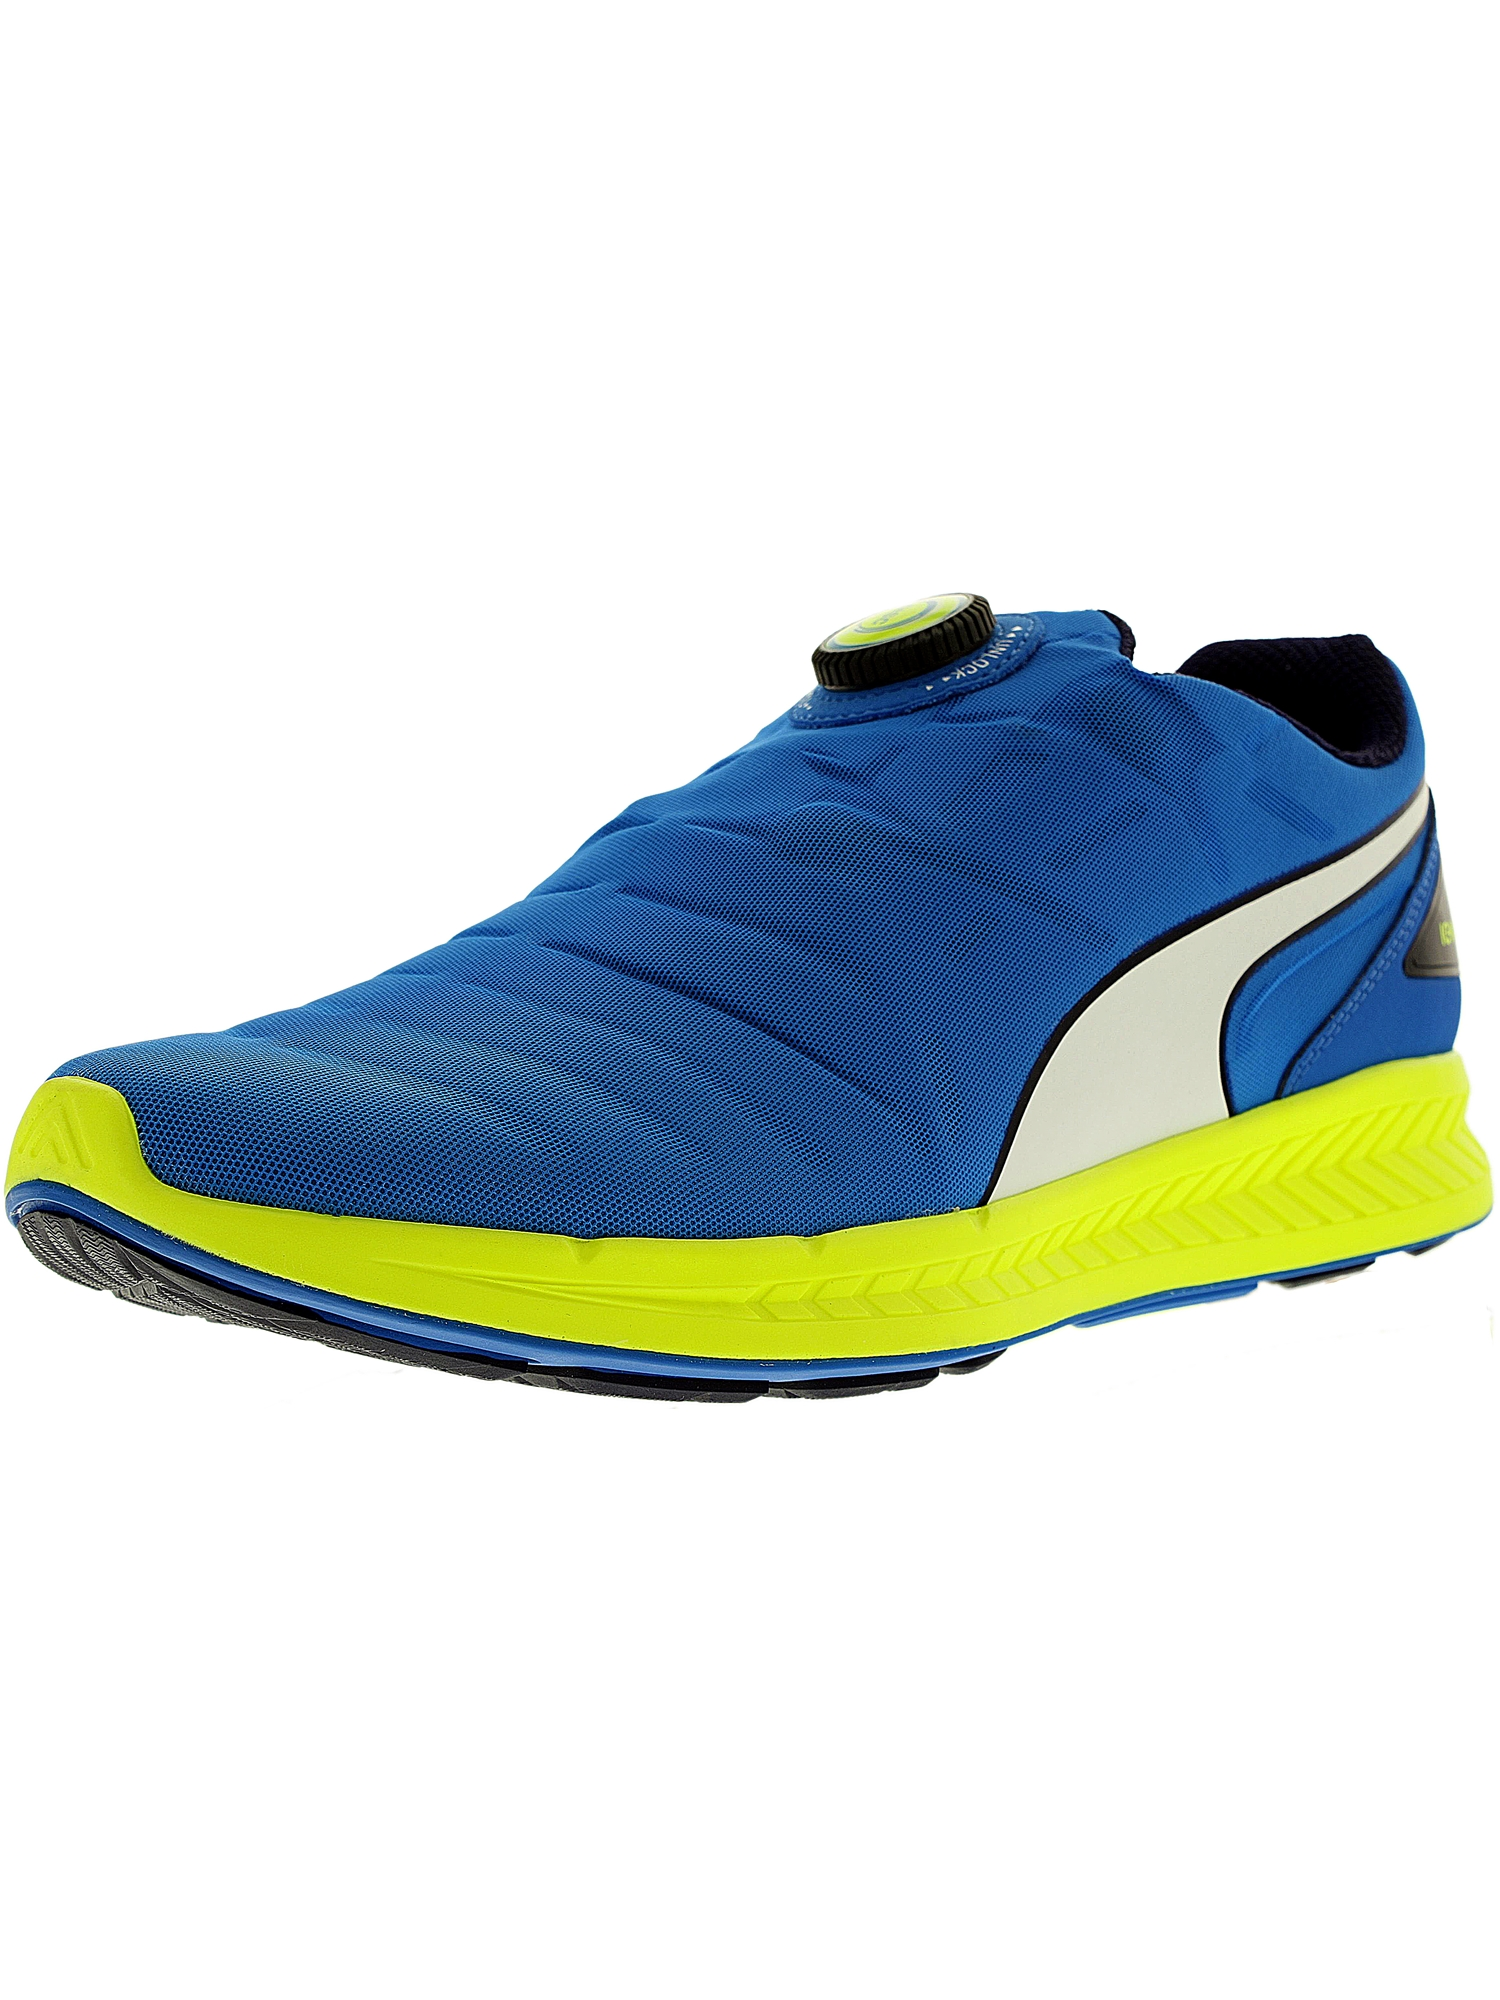 Puma Men's Ignite Disc Electric Blue/White/Safety Yellow Ankle-High Running Shoe - 8M